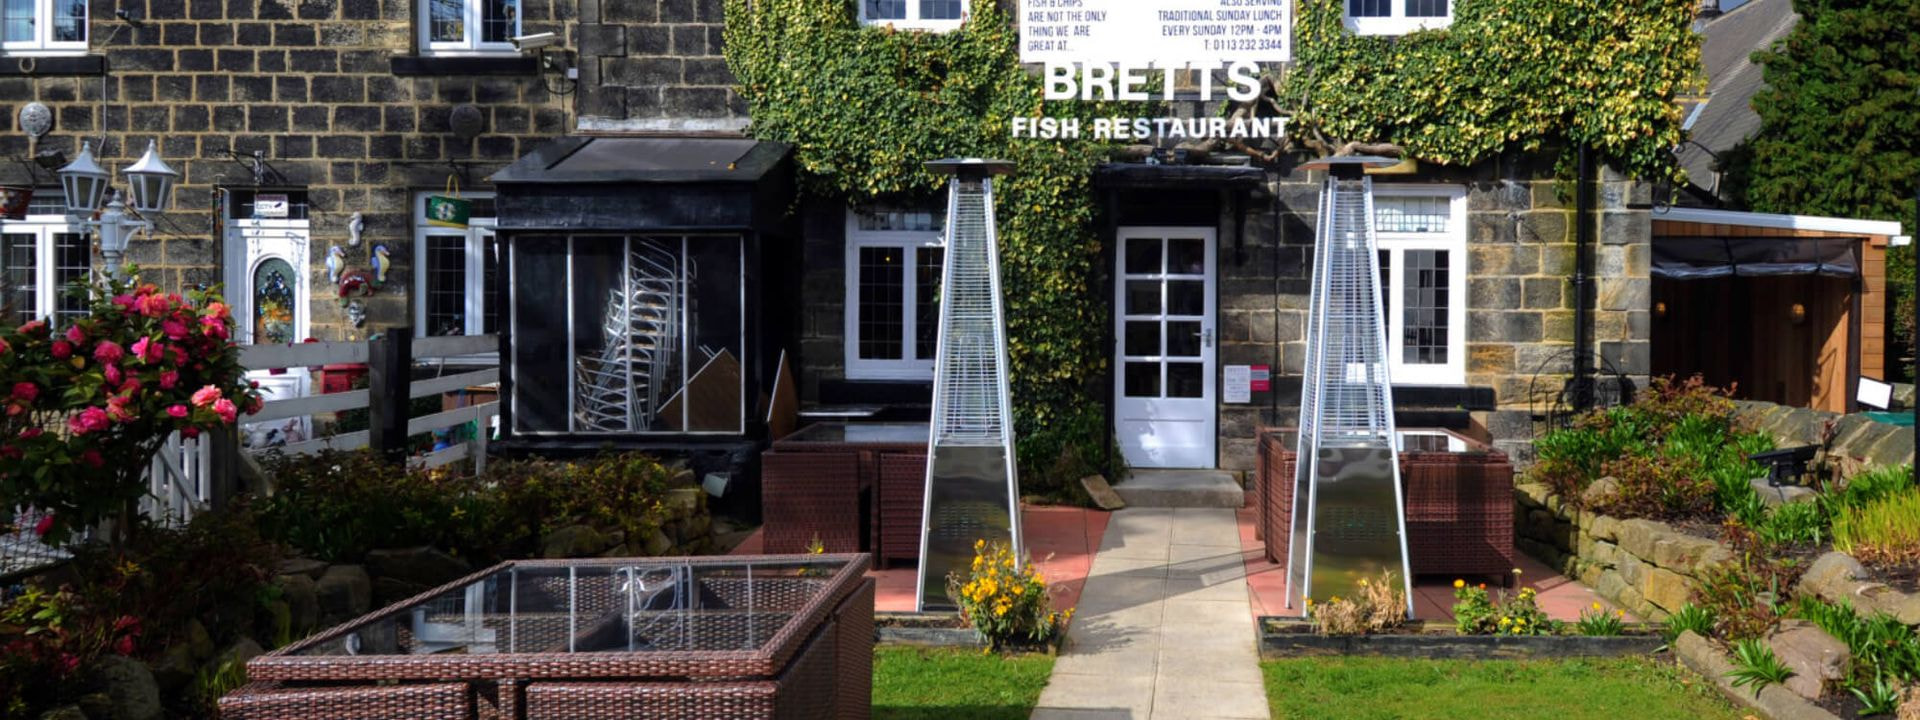 Charlie Bretts Fish and Chips